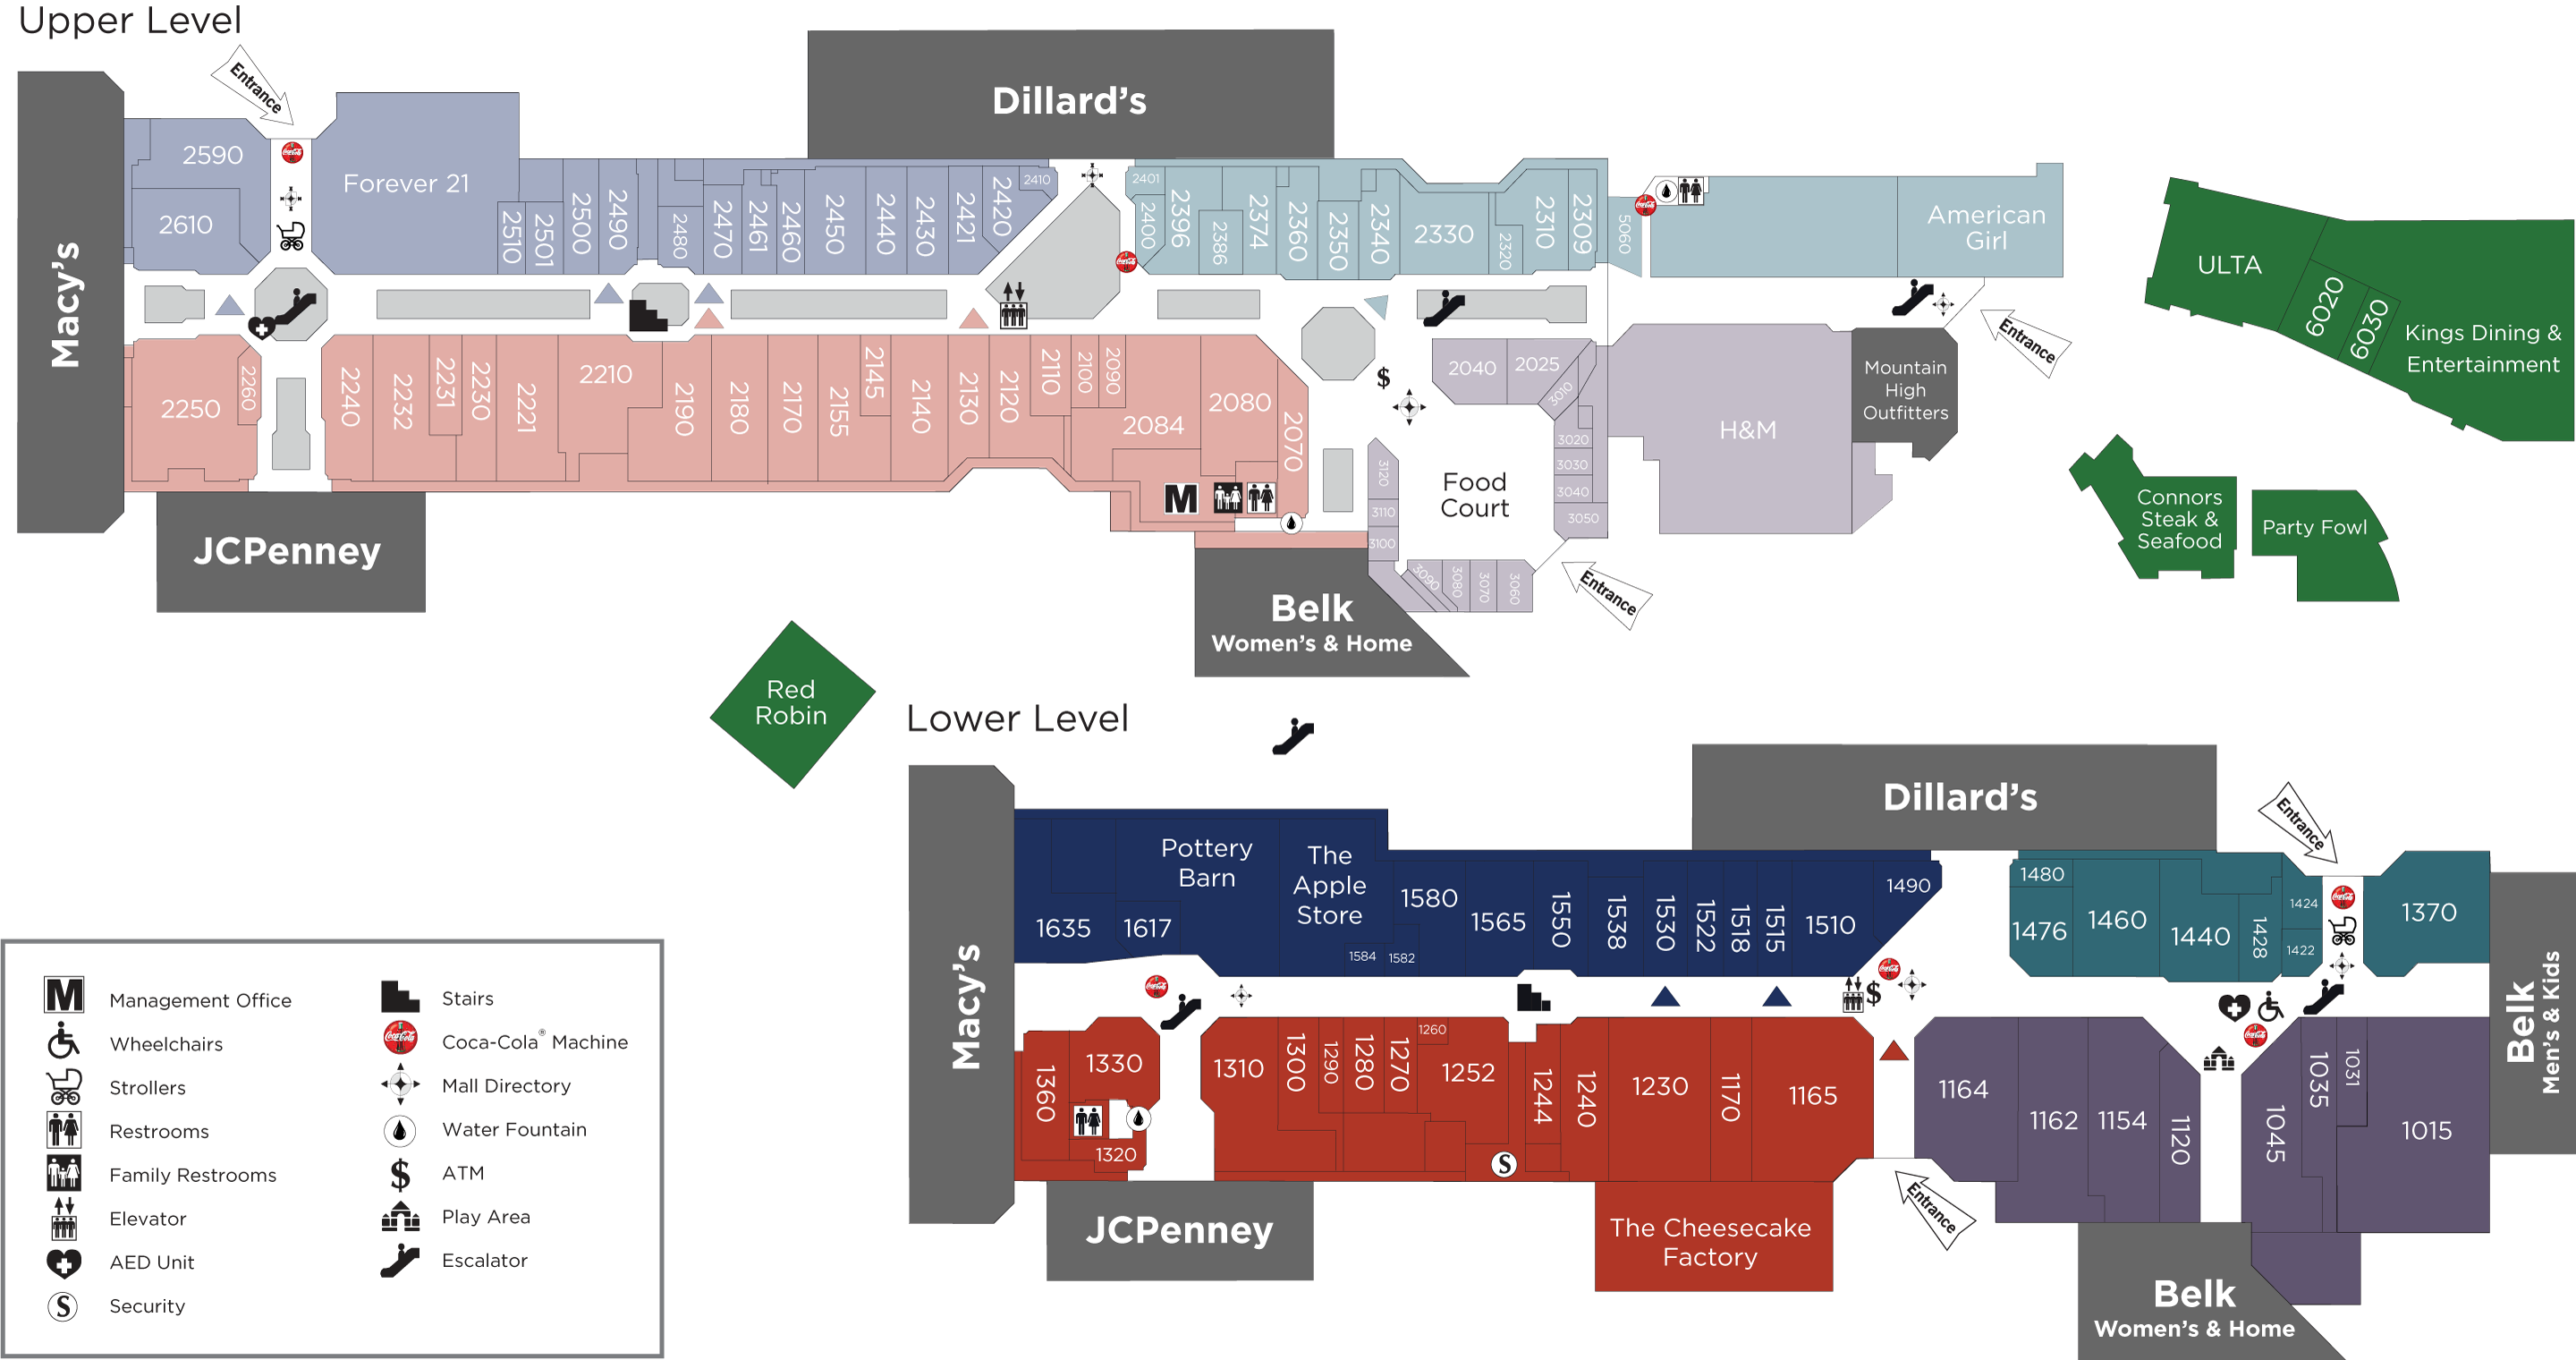 CoolSprings Galleria directory map